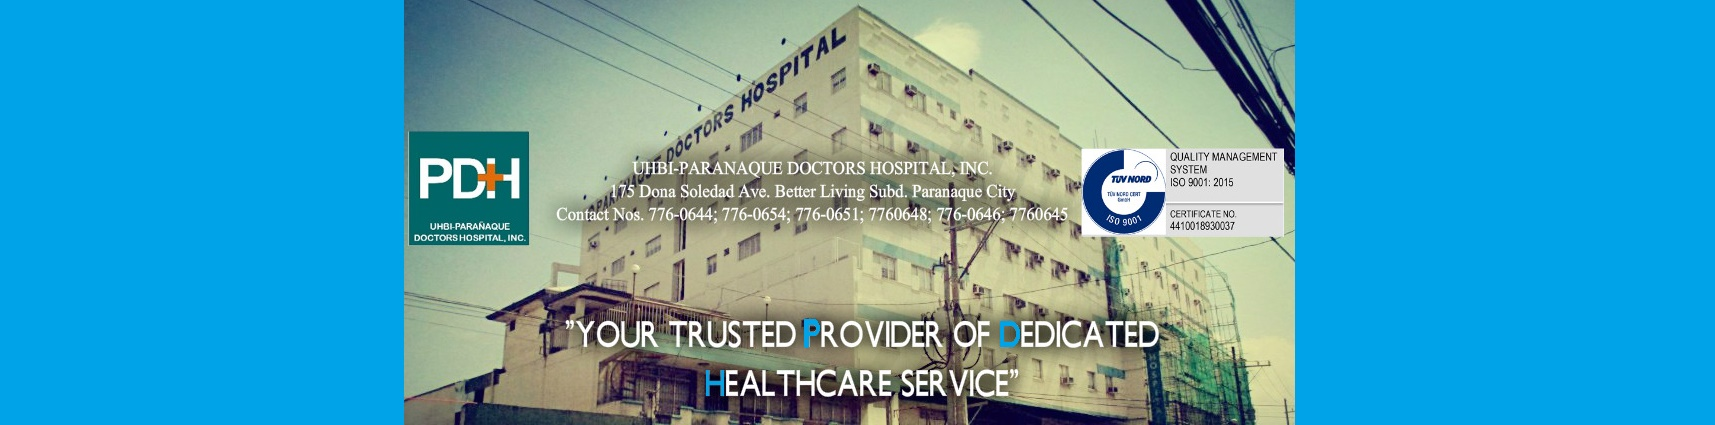 Parañaque Doctors Hospital, Inc.